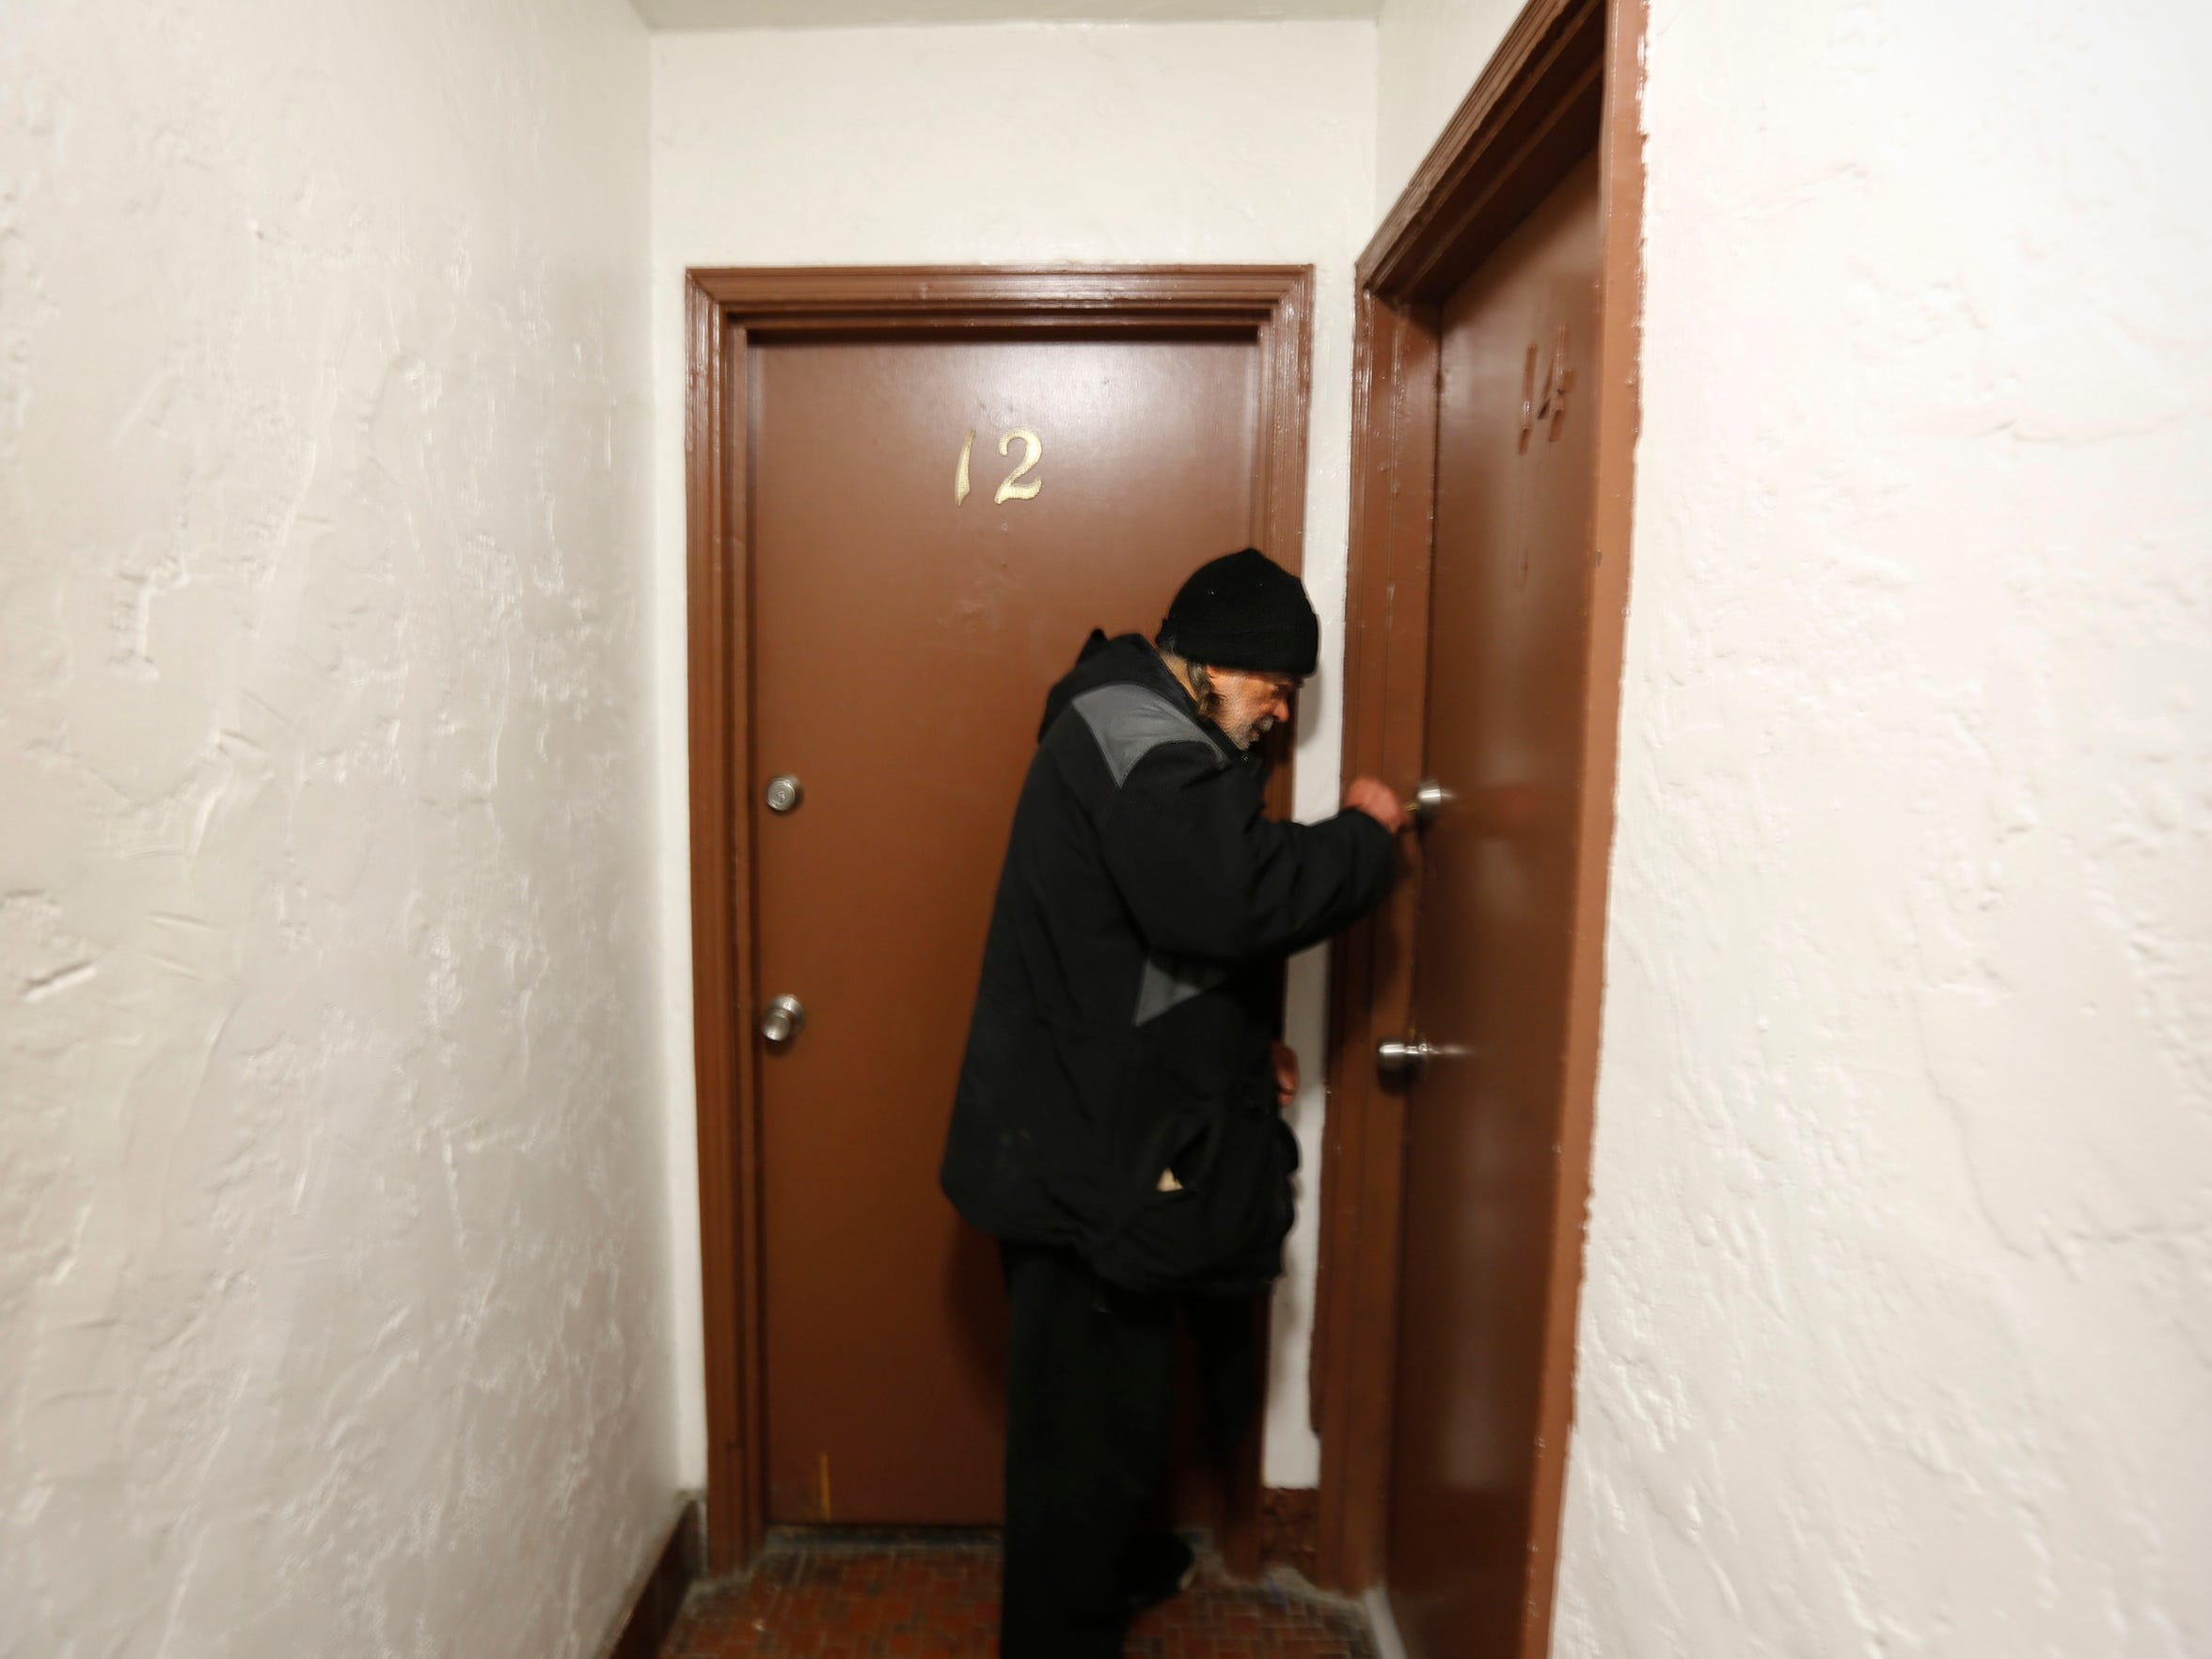 Jonathan Kovac enters his new apartment after being